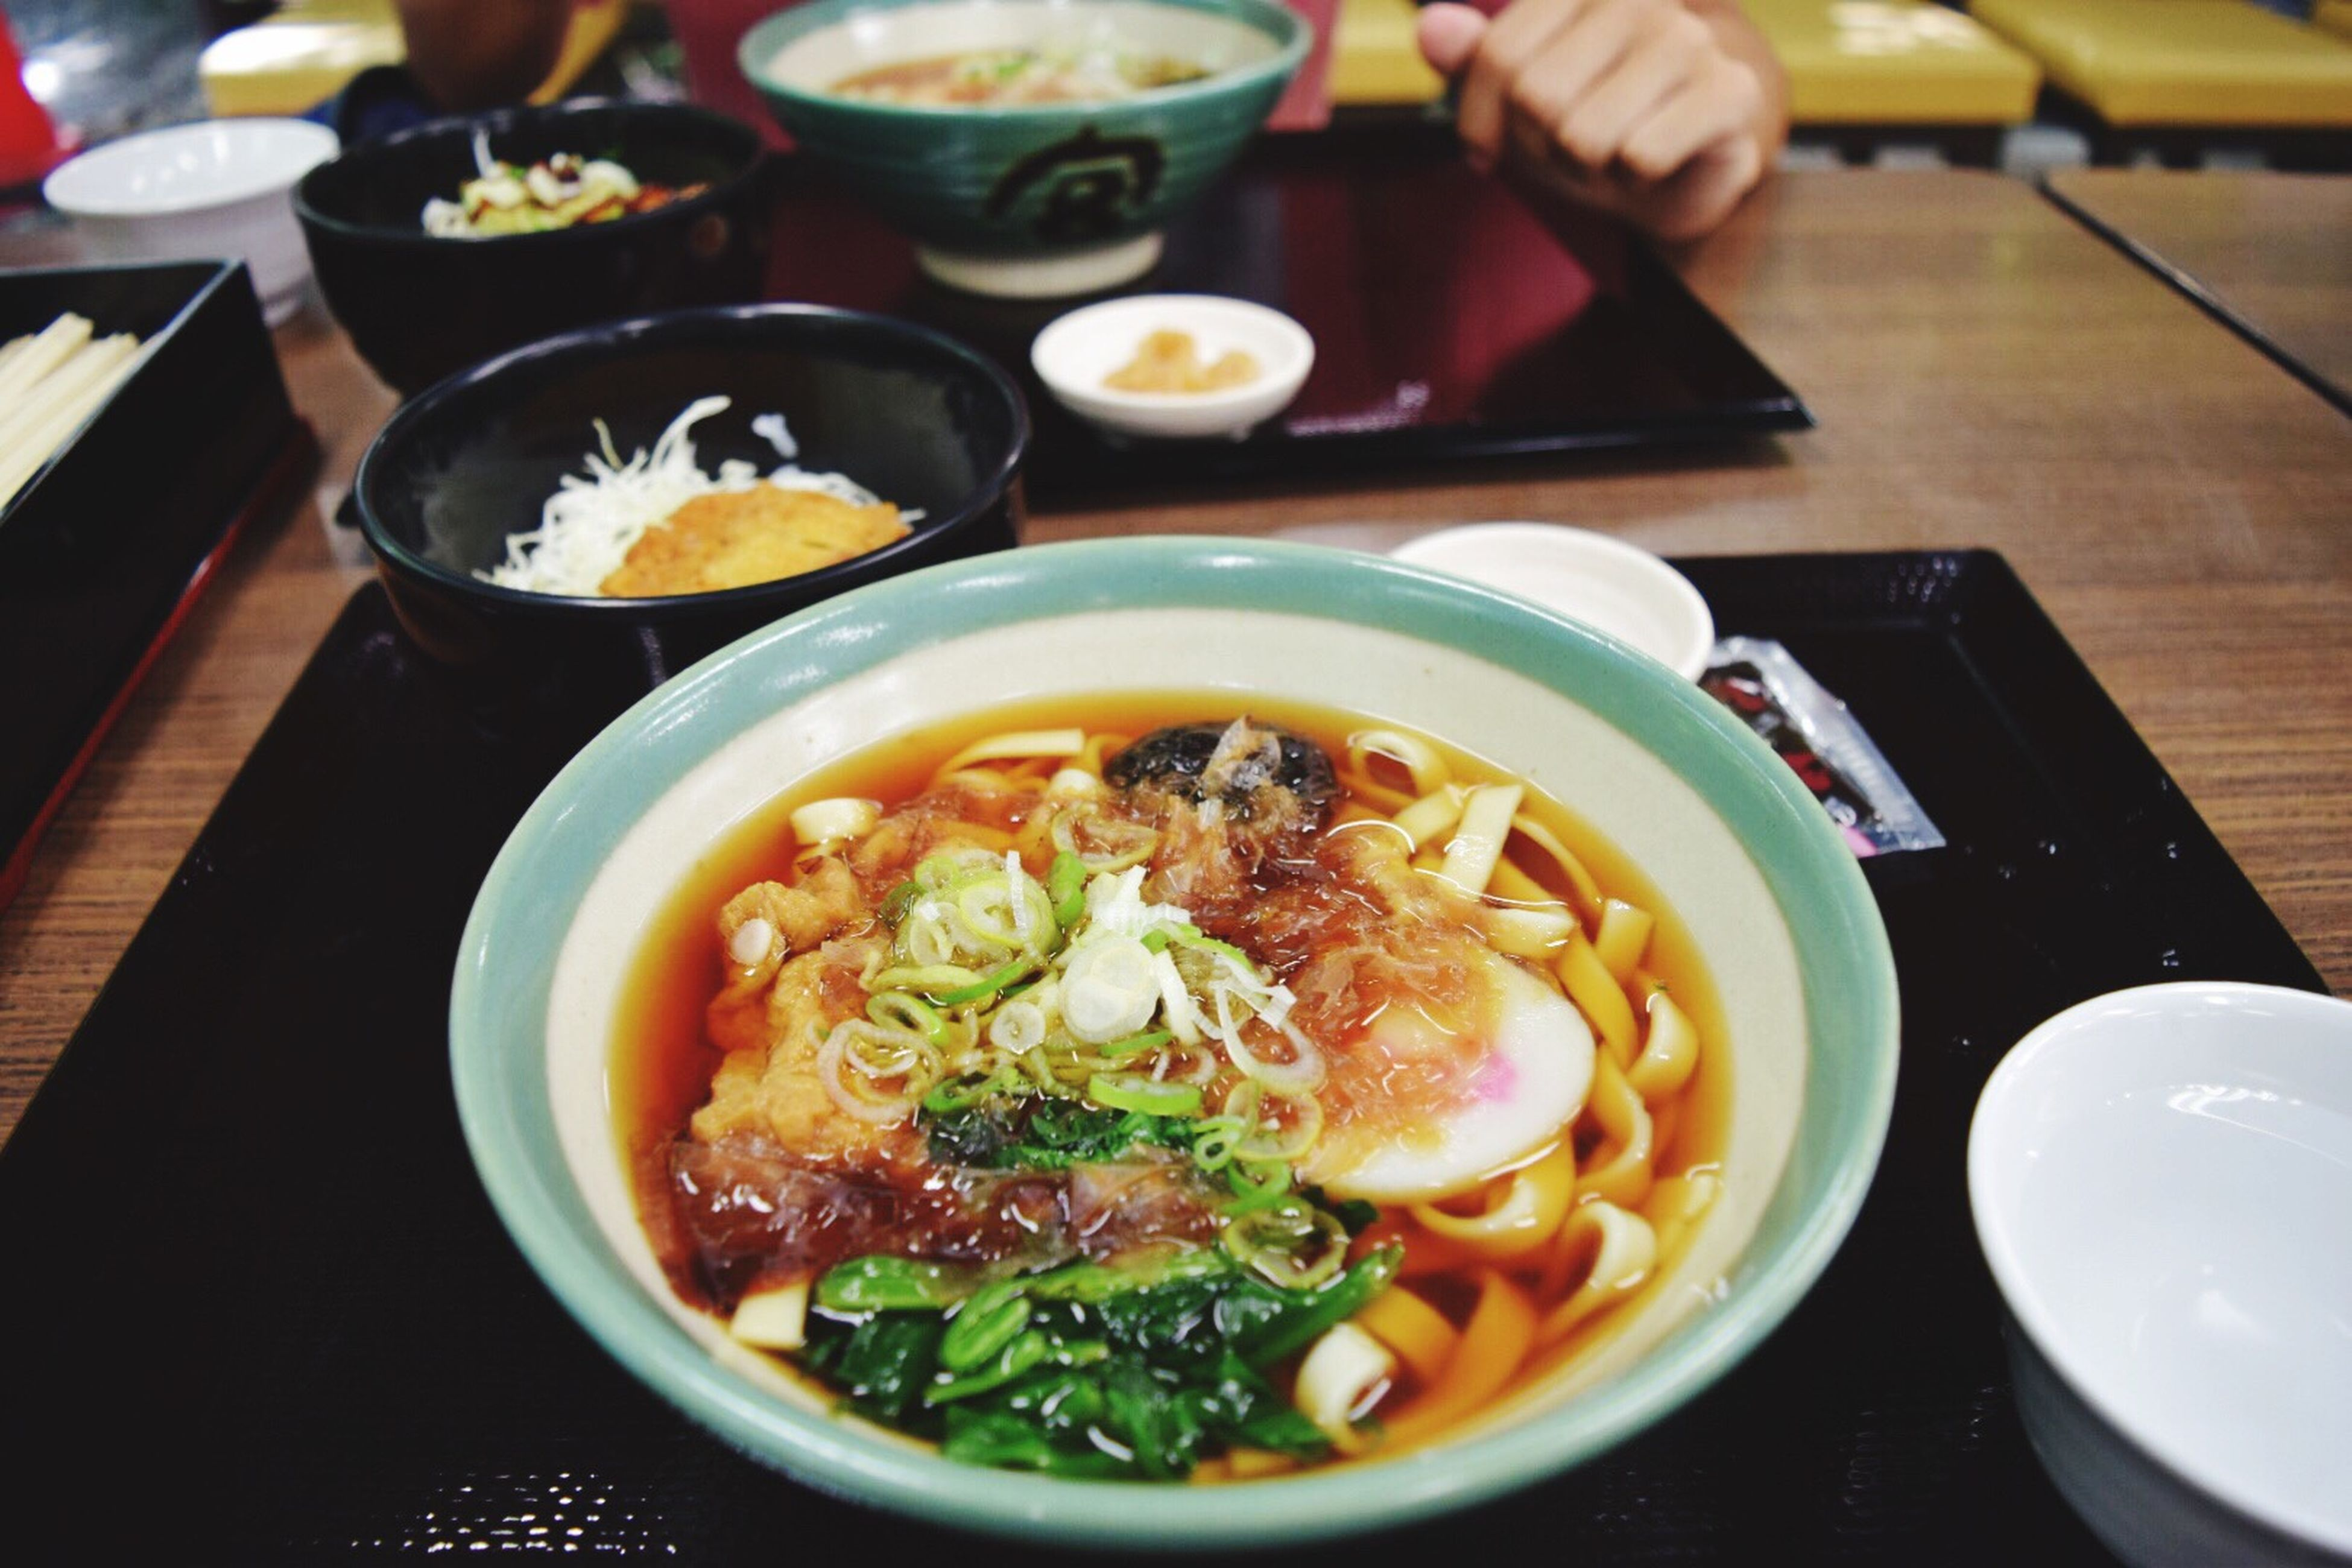 food, food and drink, ready-to-eat, freshness, serving size, plate, healthy eating, indoors, soup, healthy lifestyle, table, bowl, noodle soup, human hand, one person, close-up, human body part, day